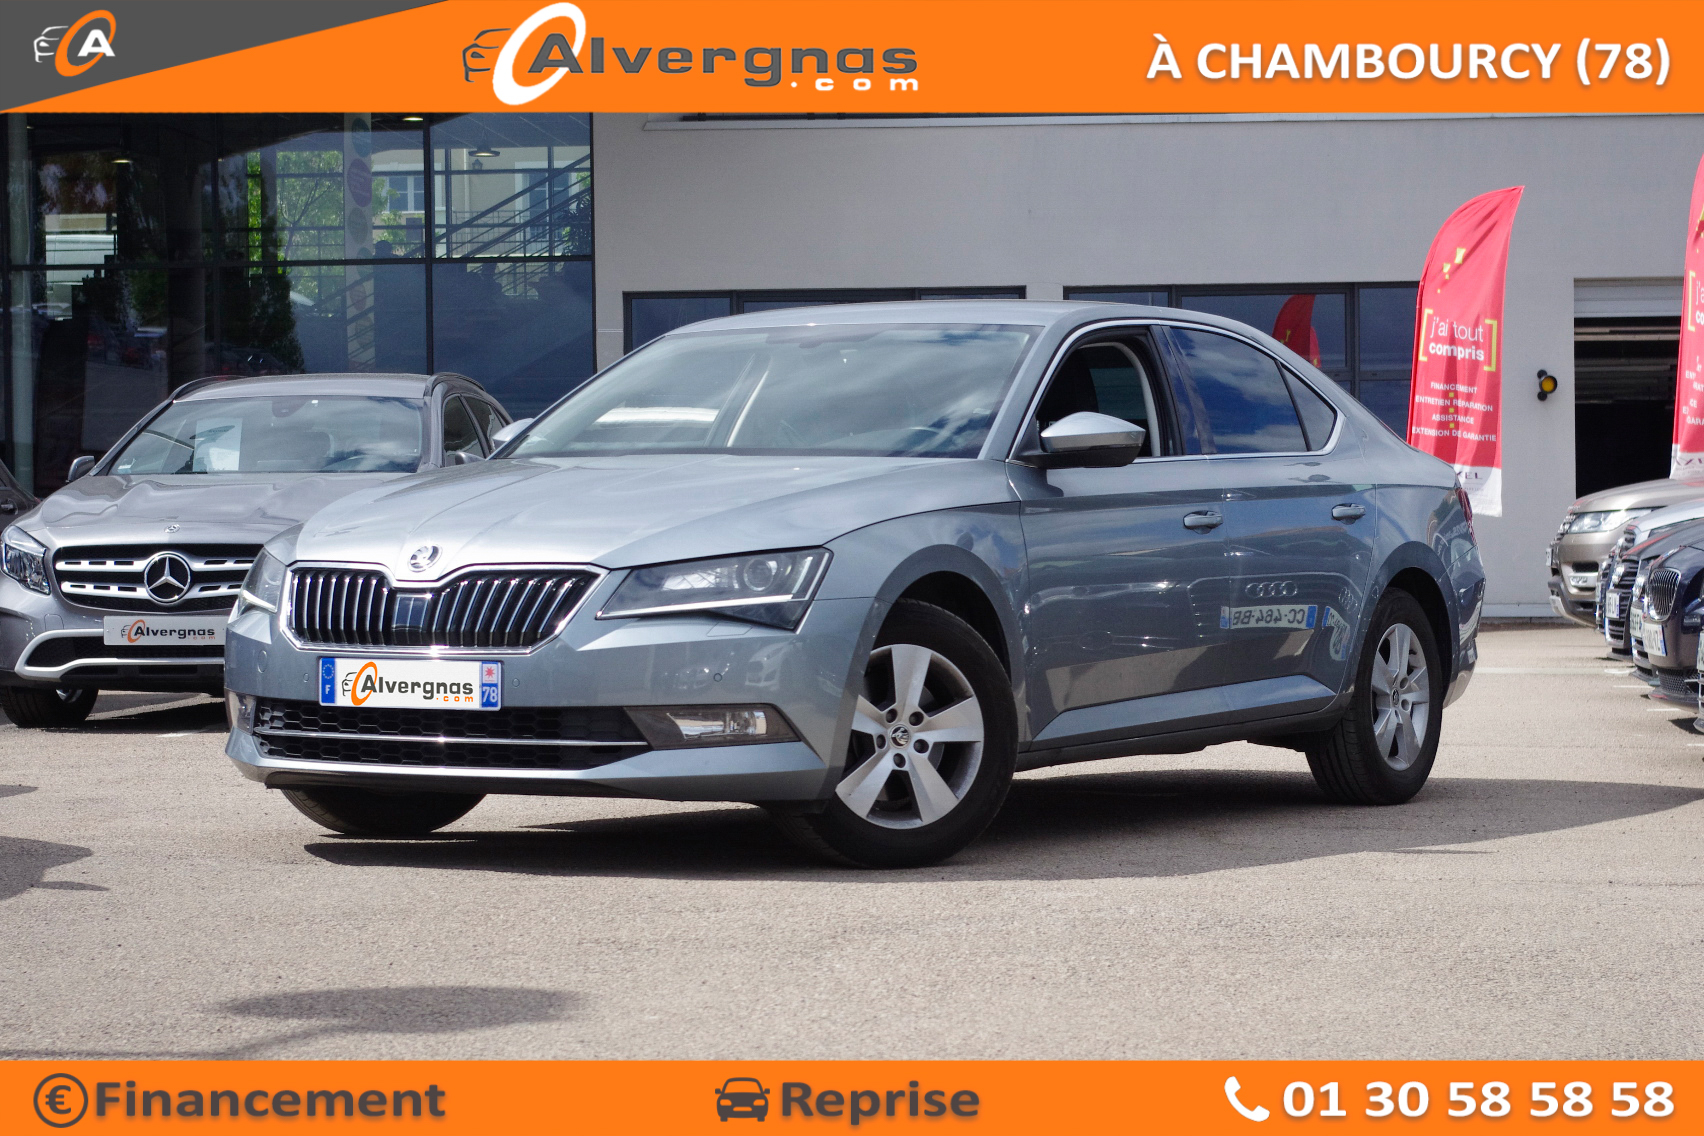 SKODA SUPERB d'occasion sur Paris